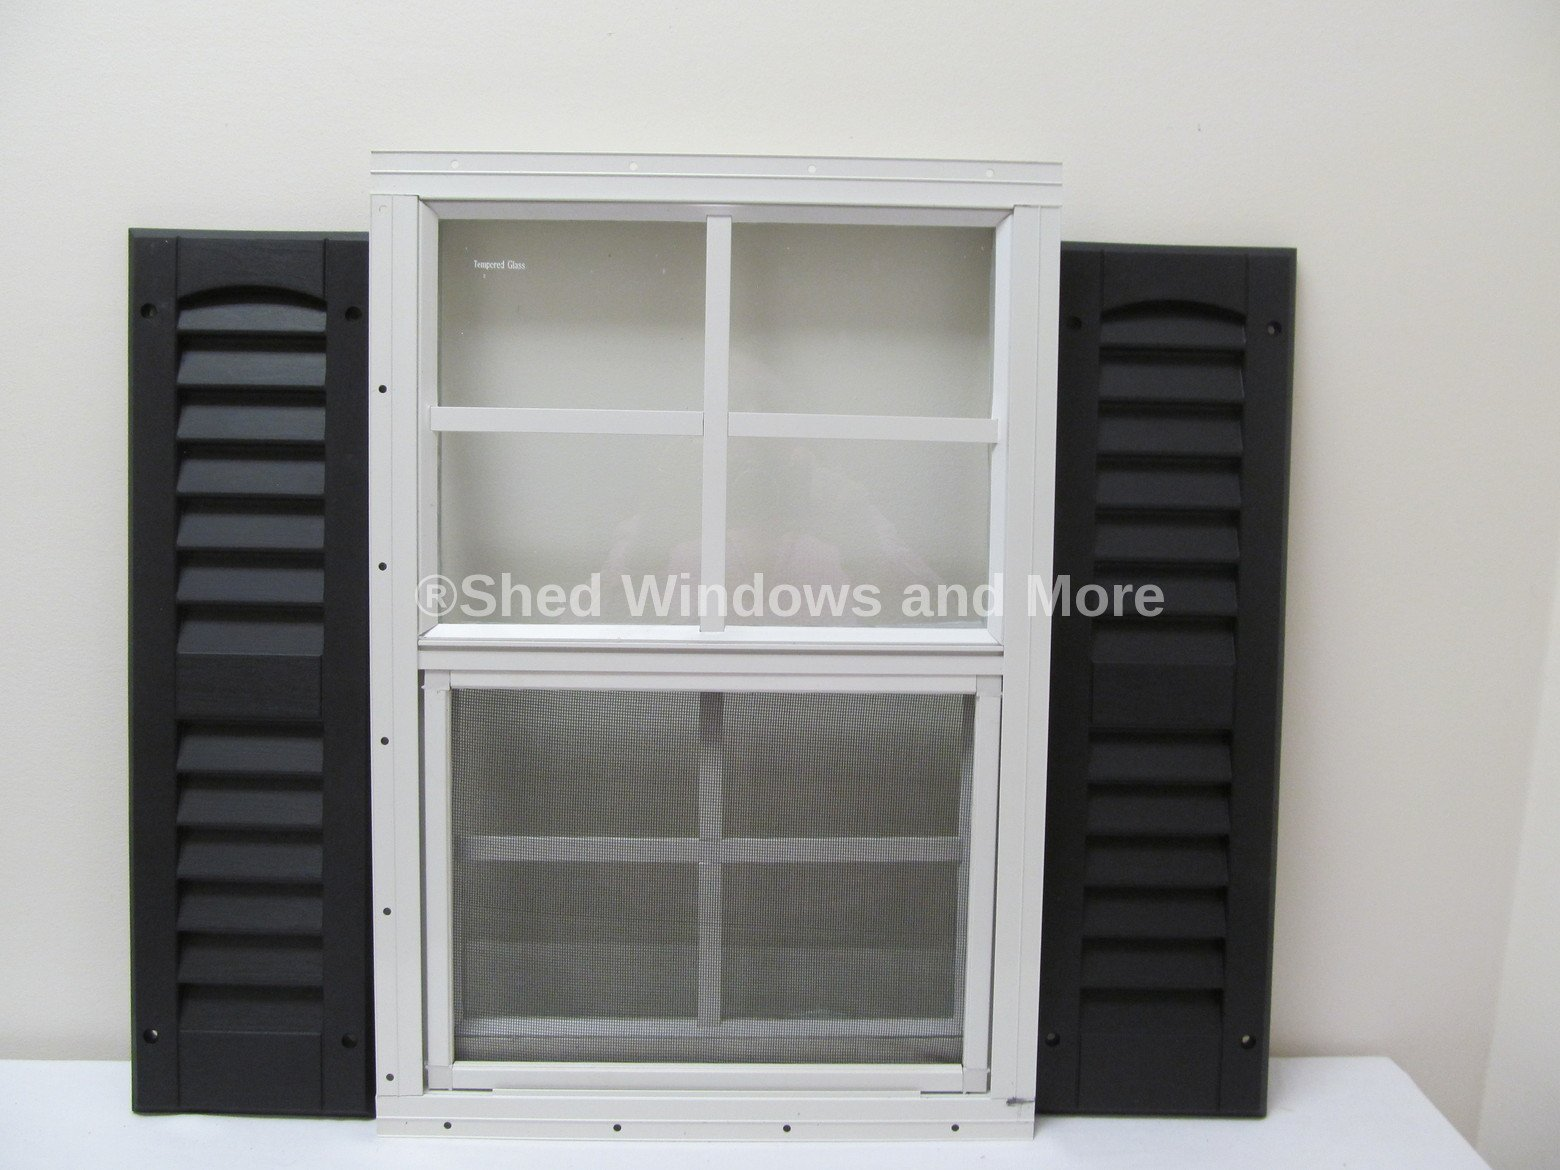 Shed Window with Shutters 14 X 21 White Flush Safety Glass Playhouse Window (Black)